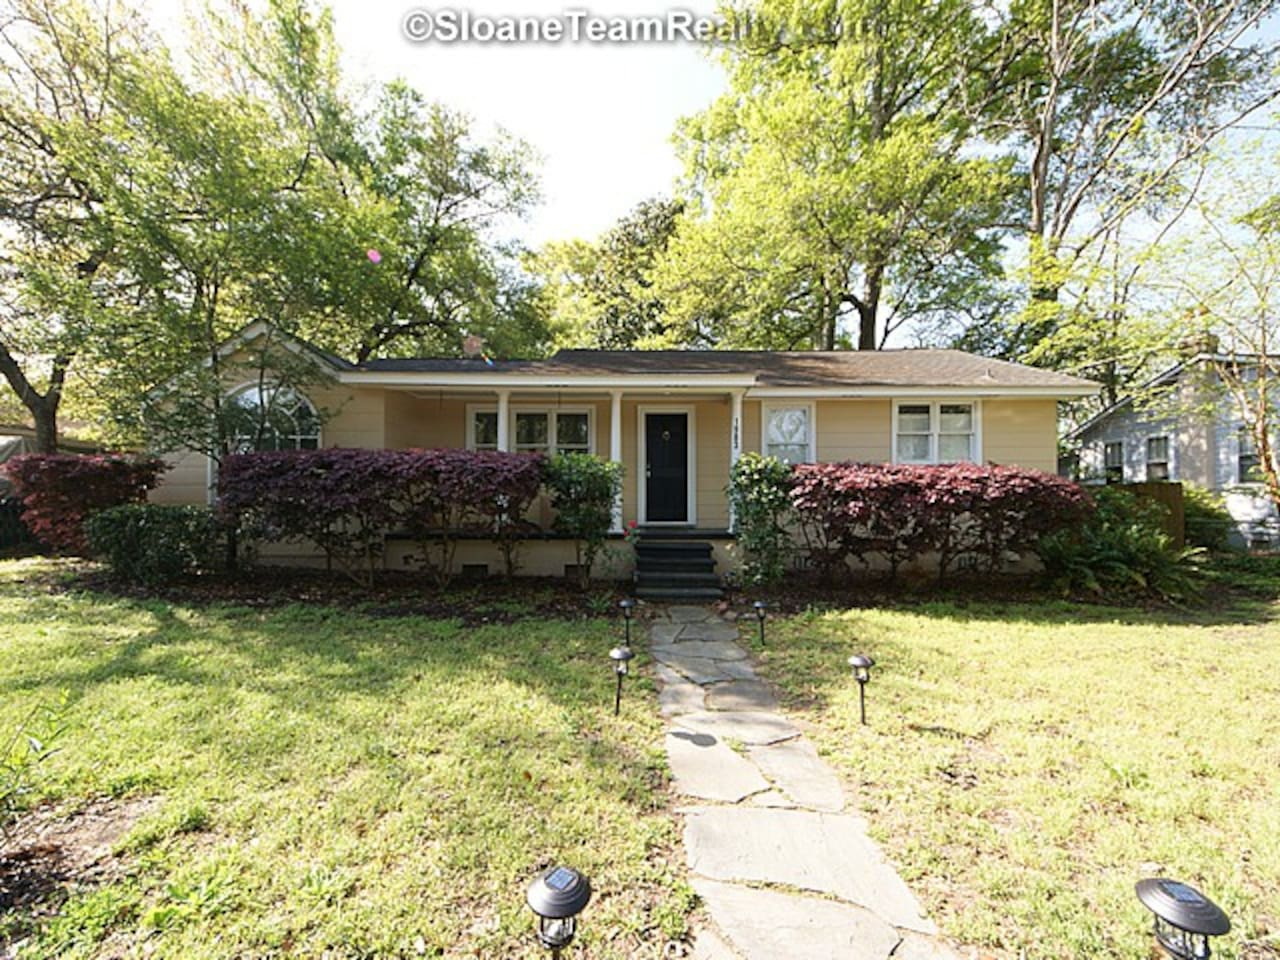 Classic southern home, comfortable and central to Downtown Charleston and the beaches